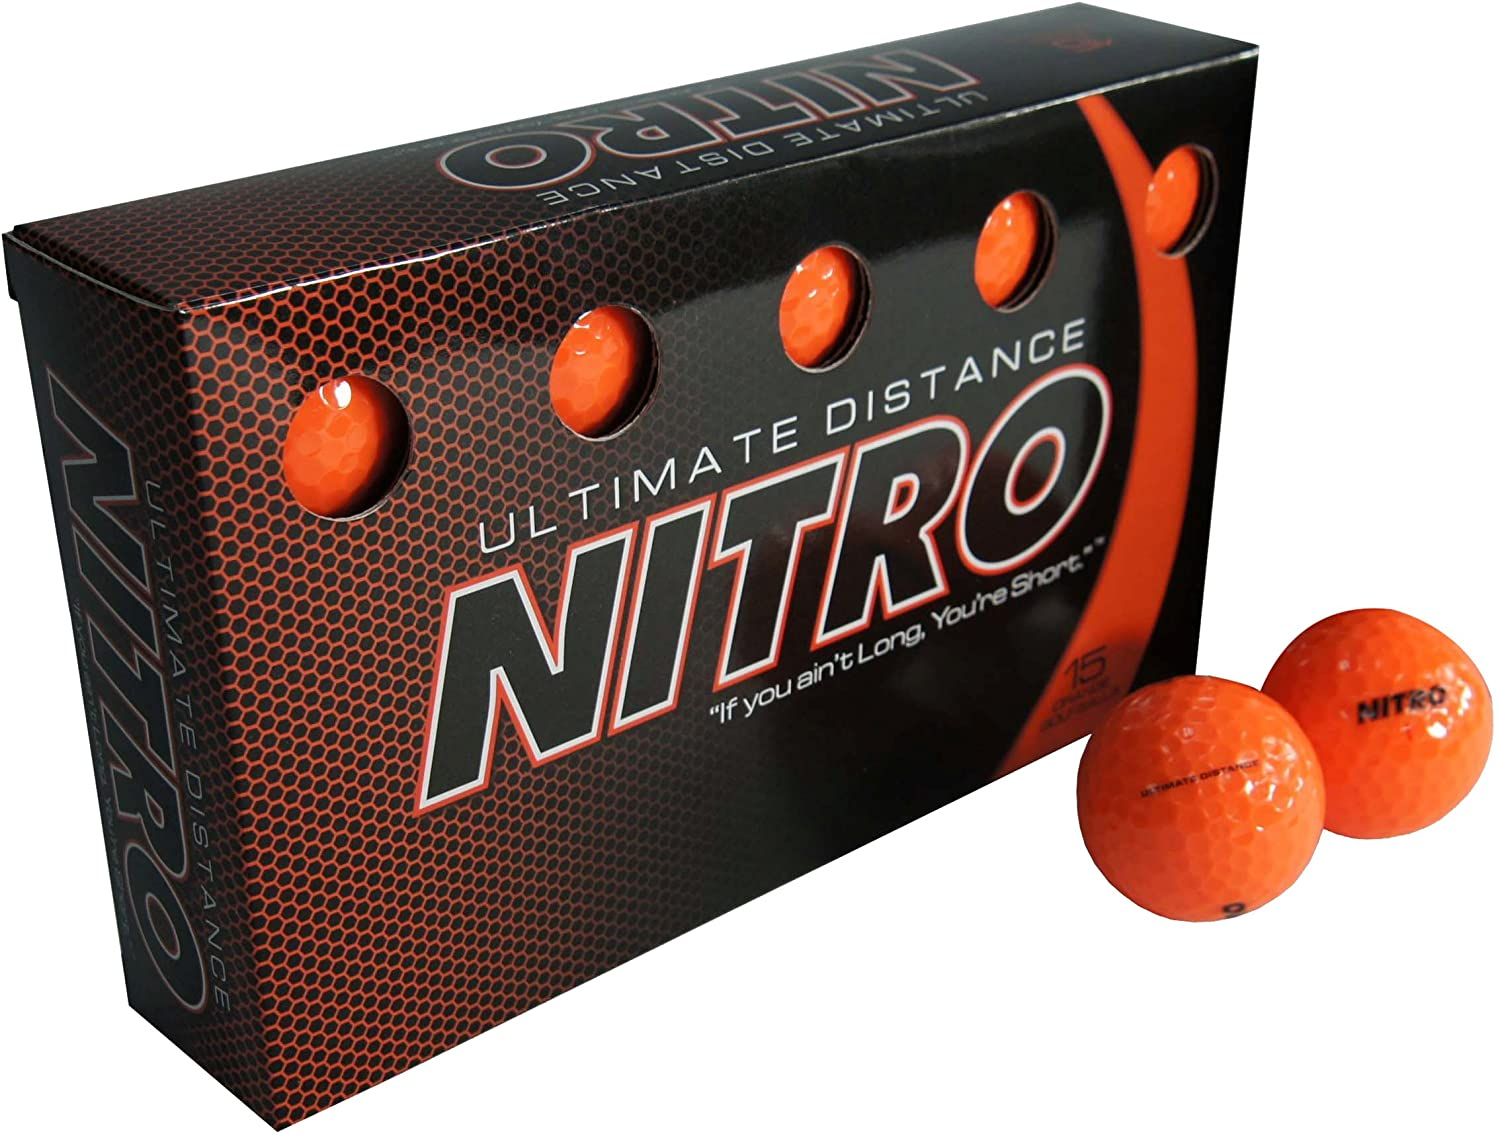 Nitro Ultimate Distance Golf Balls (in a pack of 15)